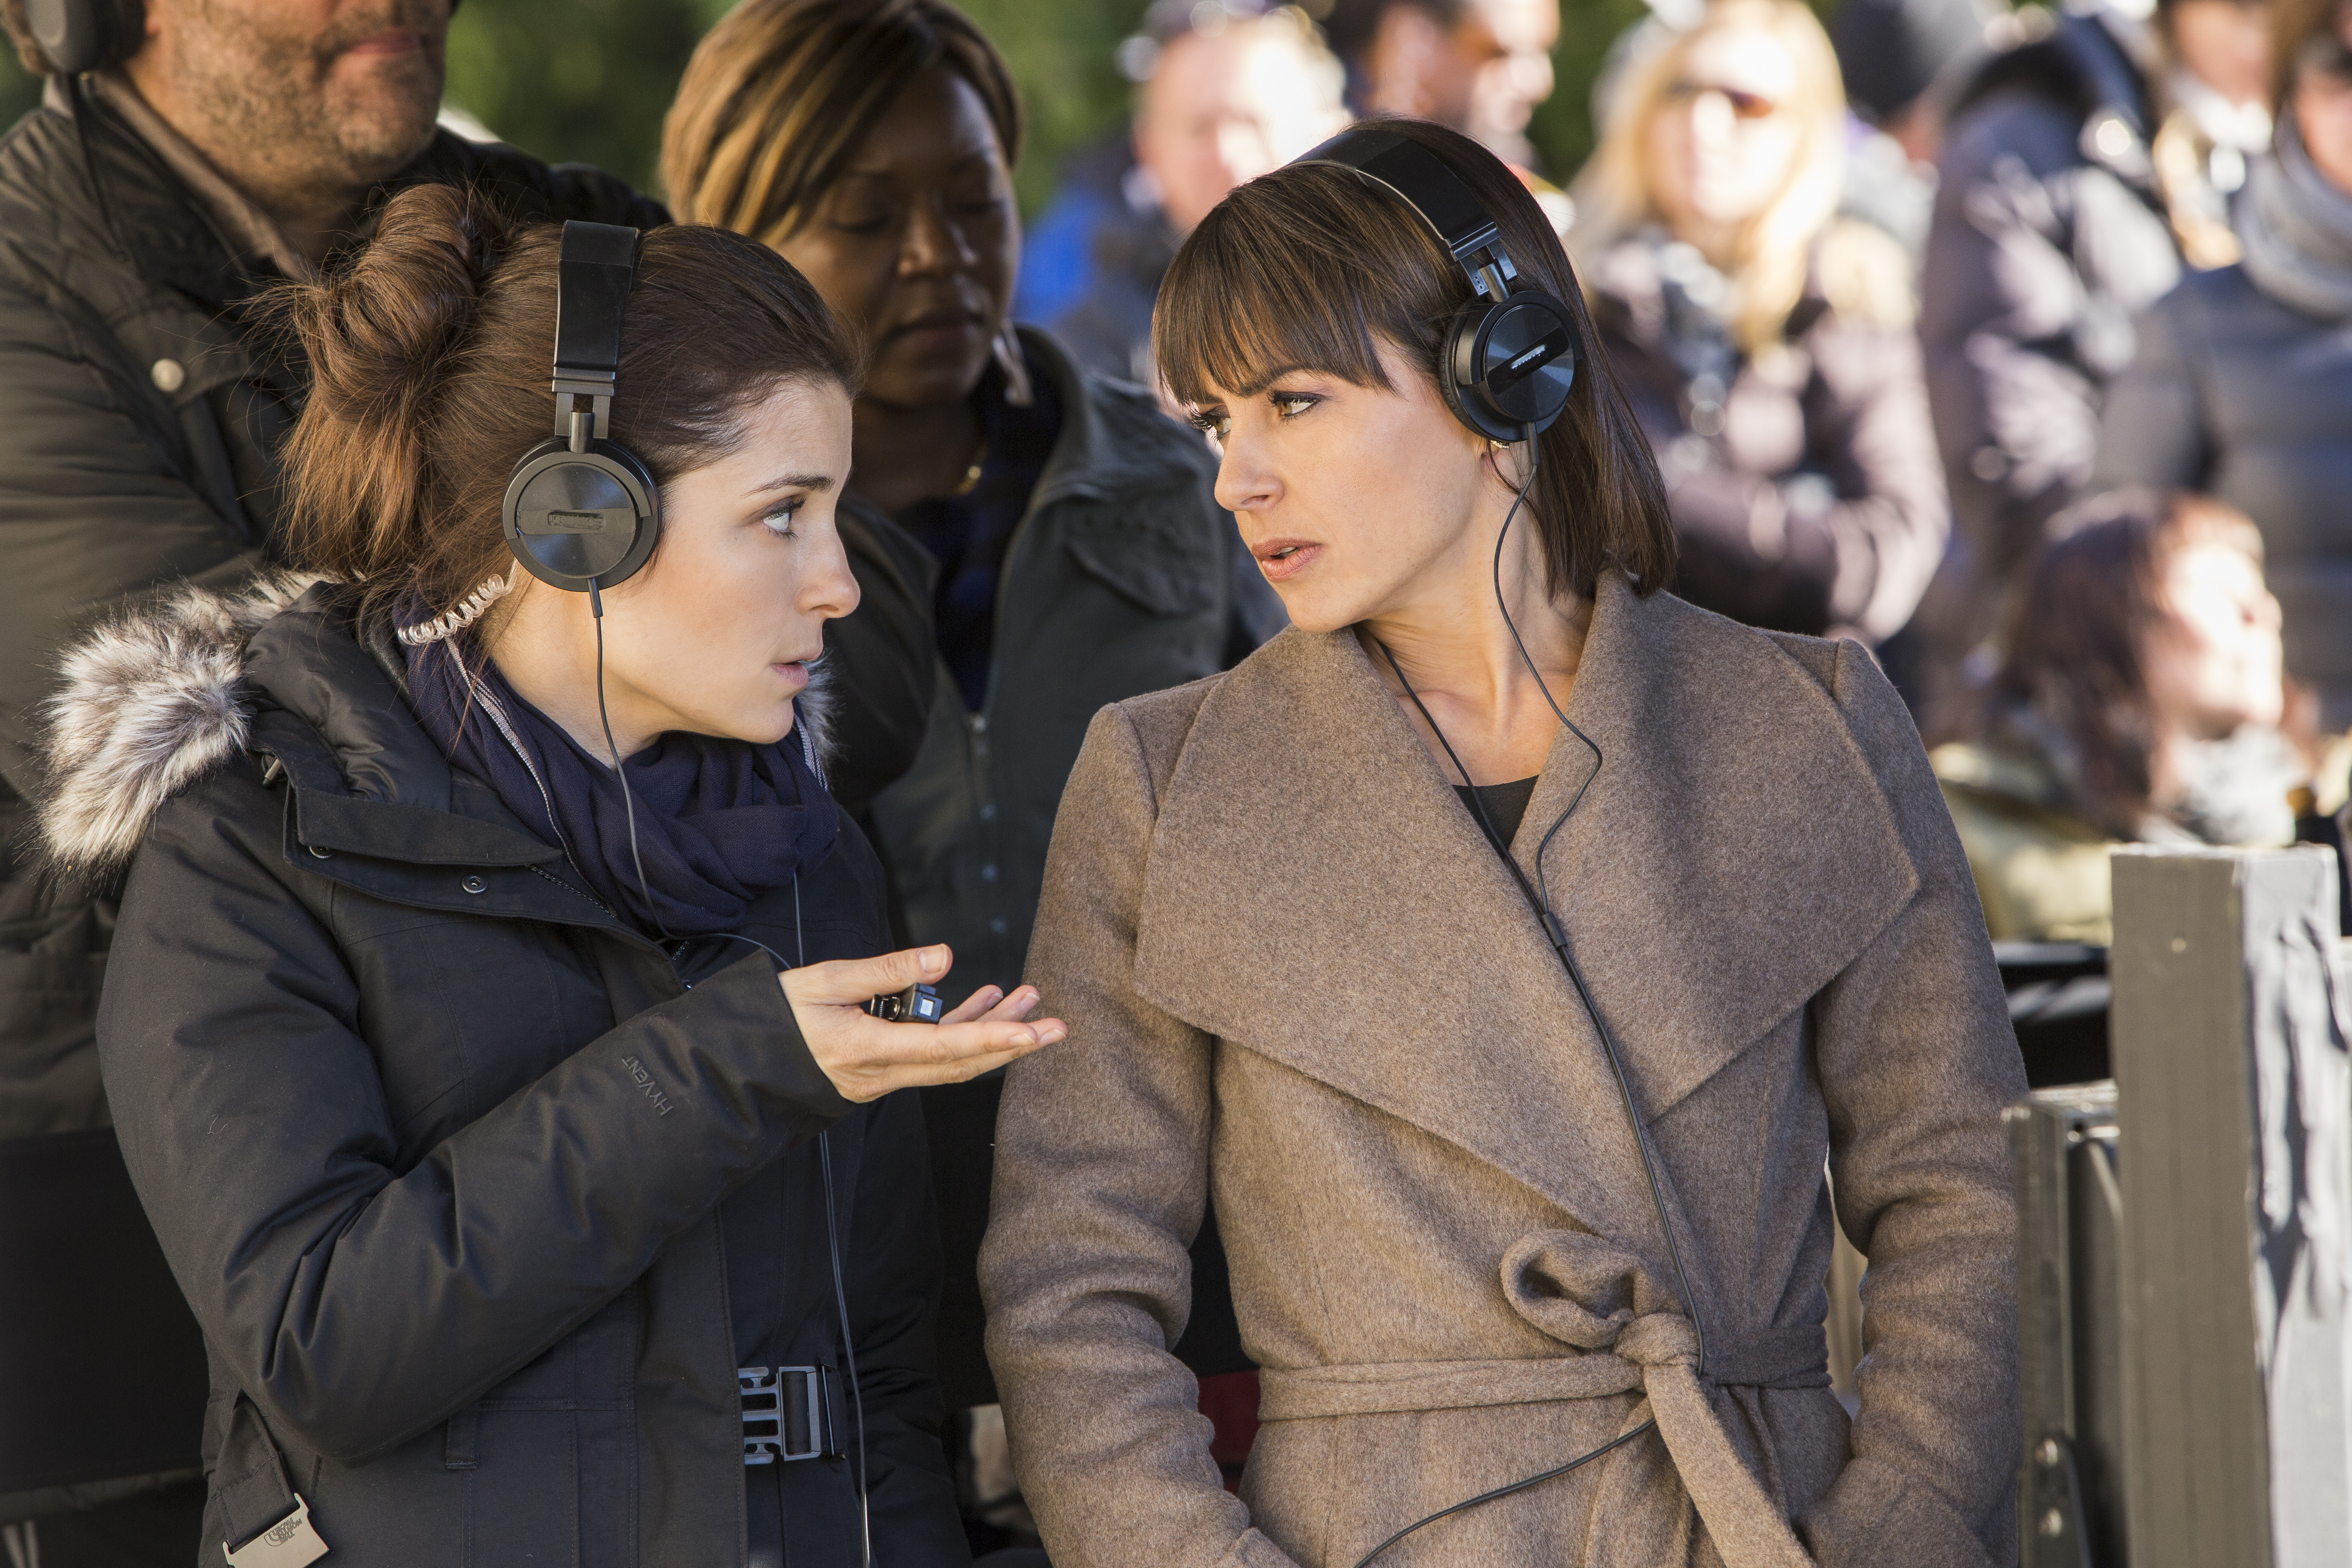 Rachel (Shiri Appleby) and Quinn (Constance Zimmer) make the calls on UnReal's fictional reality show.